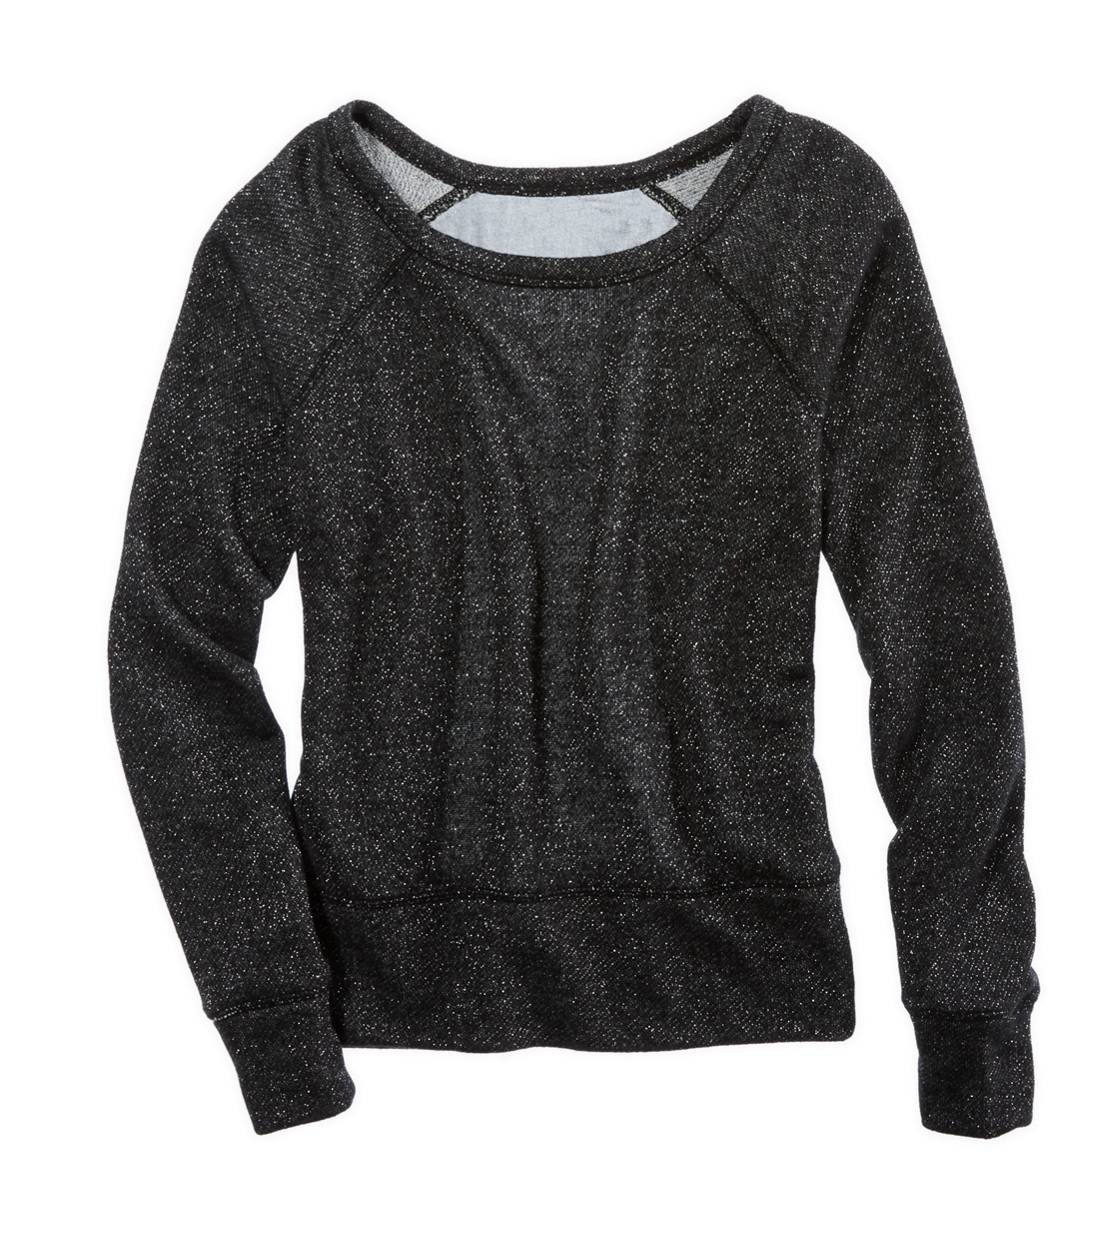 True Black Aerie Chiffon Back Sparkle Sweatshirt